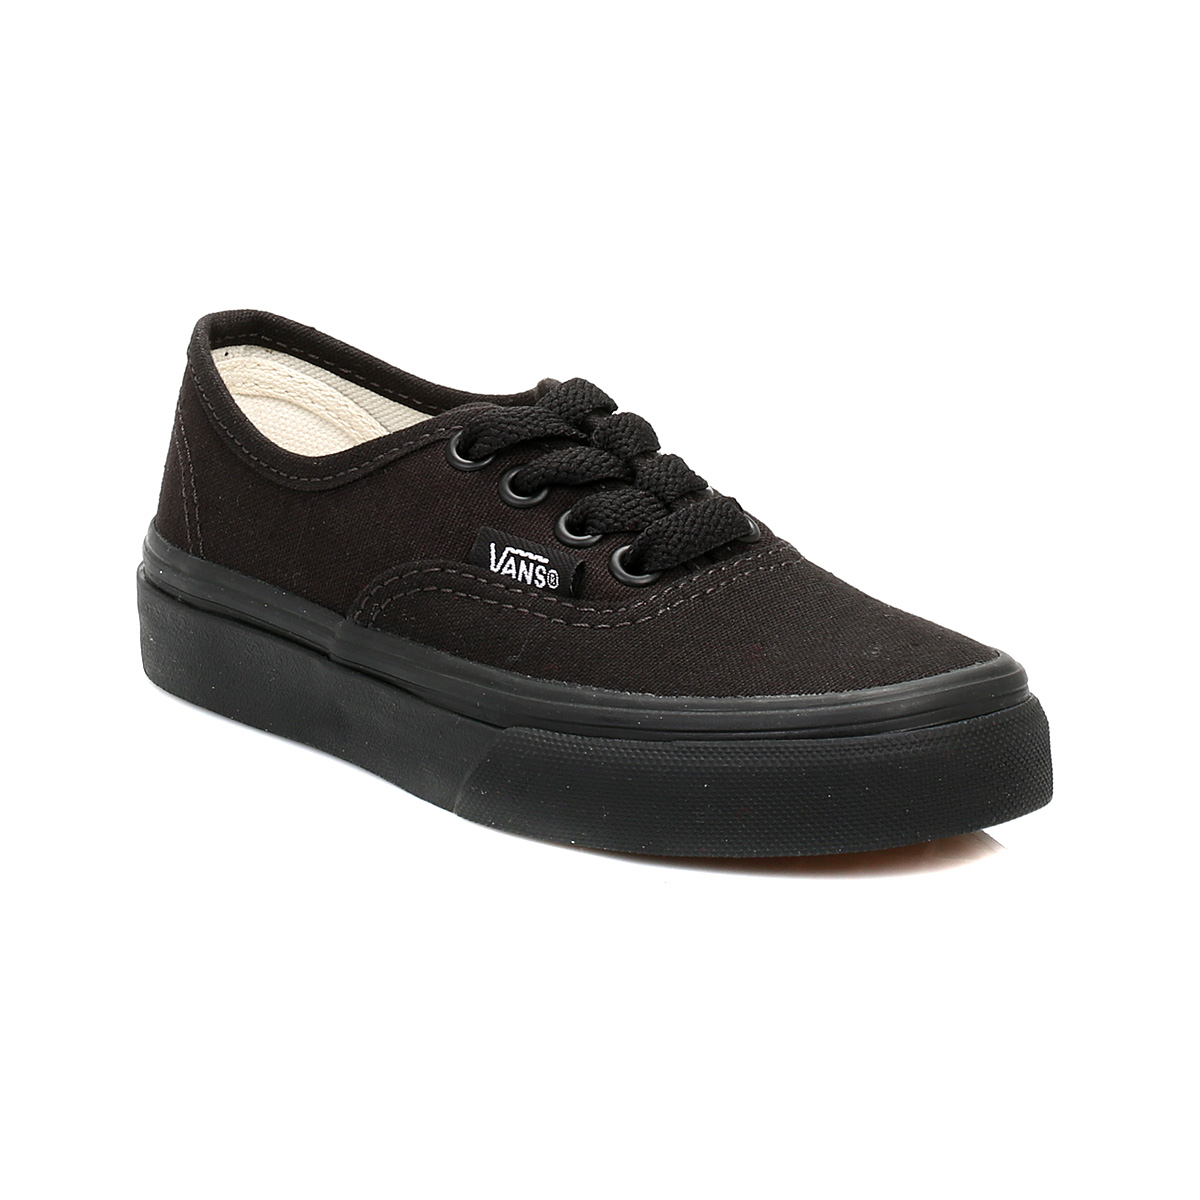 View all kids footwear Check out the fantastic range of kids canvas shoes that are stylish and perfect for everyday wear. We have kids canvas shoes from brands such as Skechers, SoulCal, Dunlop and lots more at great discount prices.